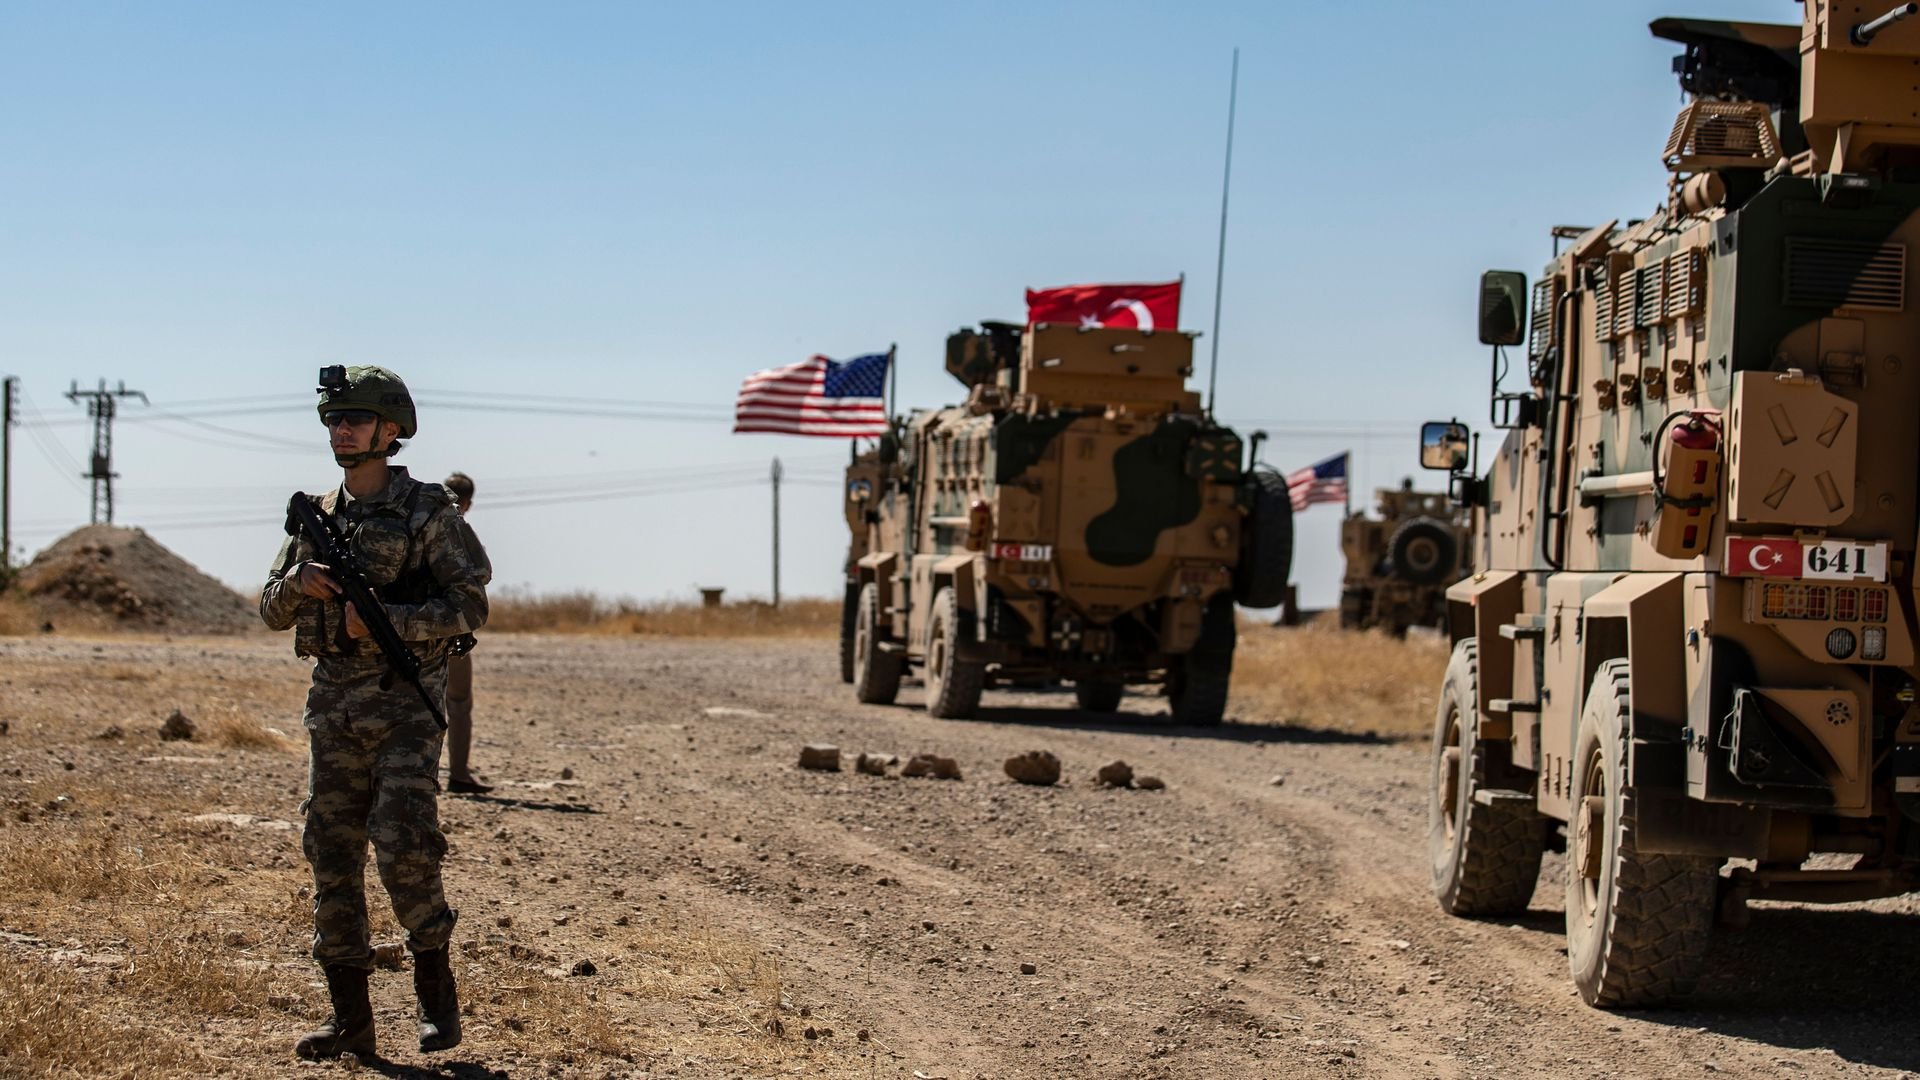 Defense Secretary Mark Esper says all U.S. troops in Syria to leave for western Iraq